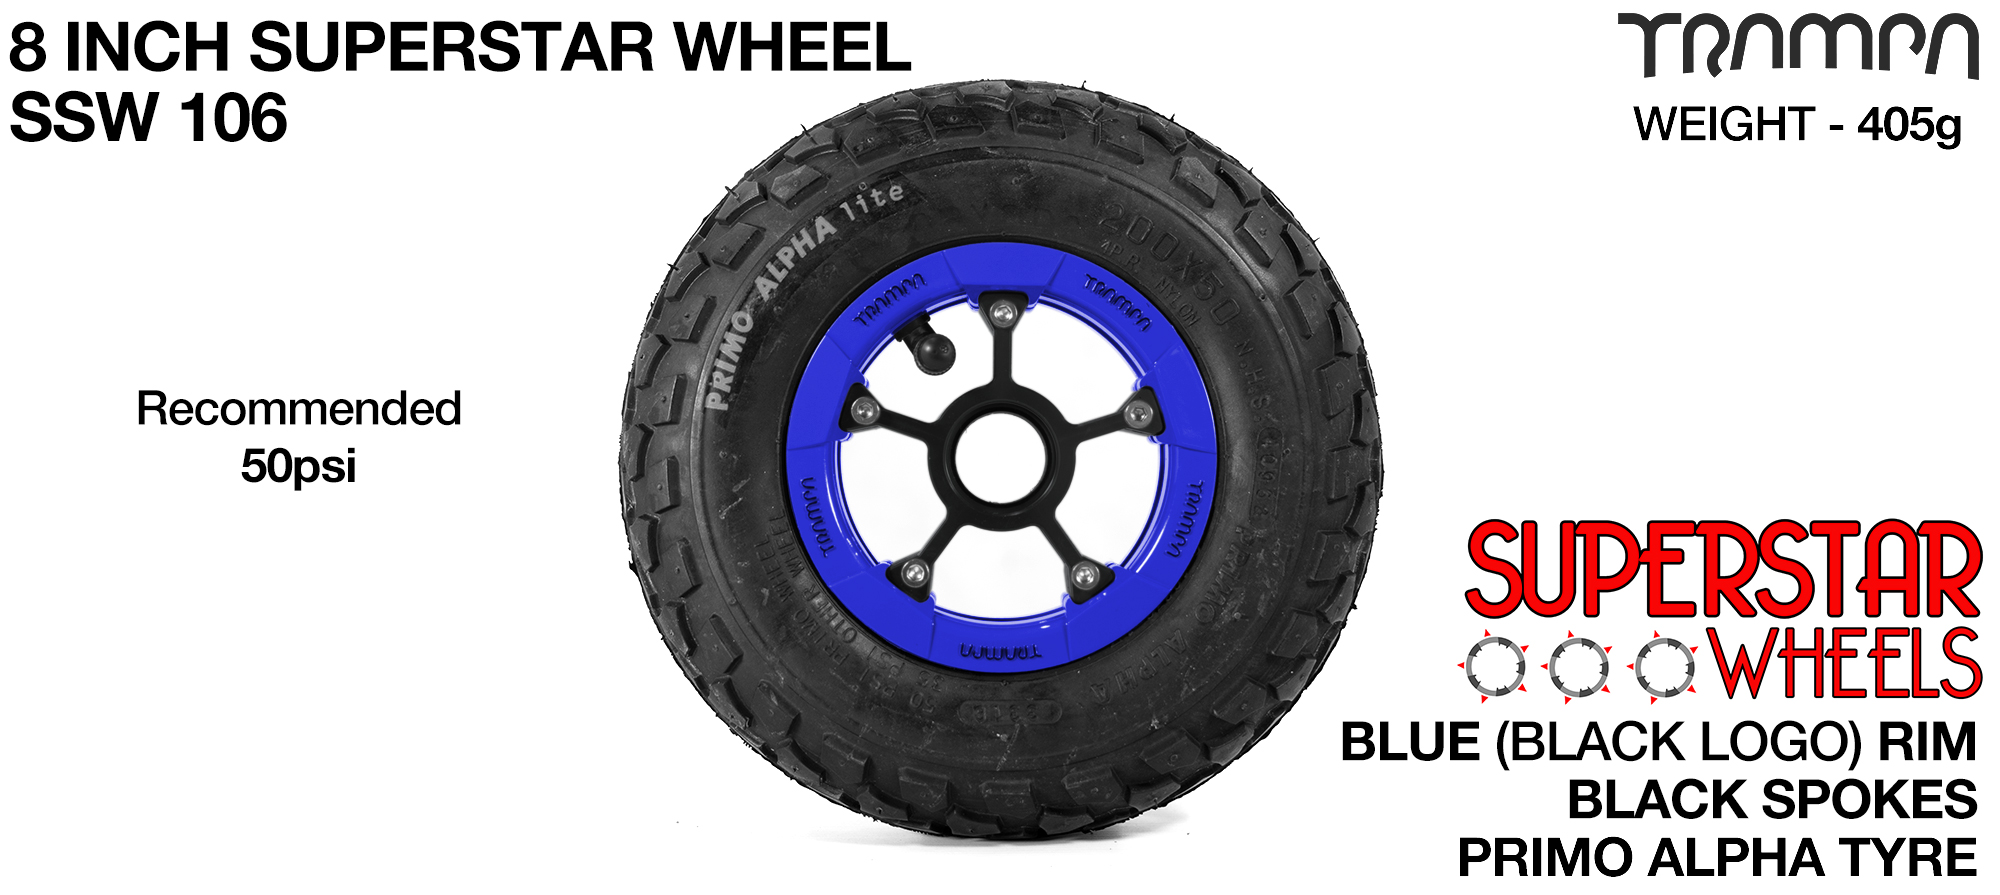 Superstar wheel - Blue Gloss Rim with Black Anodised Spokes and Black Alpha Tyre - 8 inch wheel